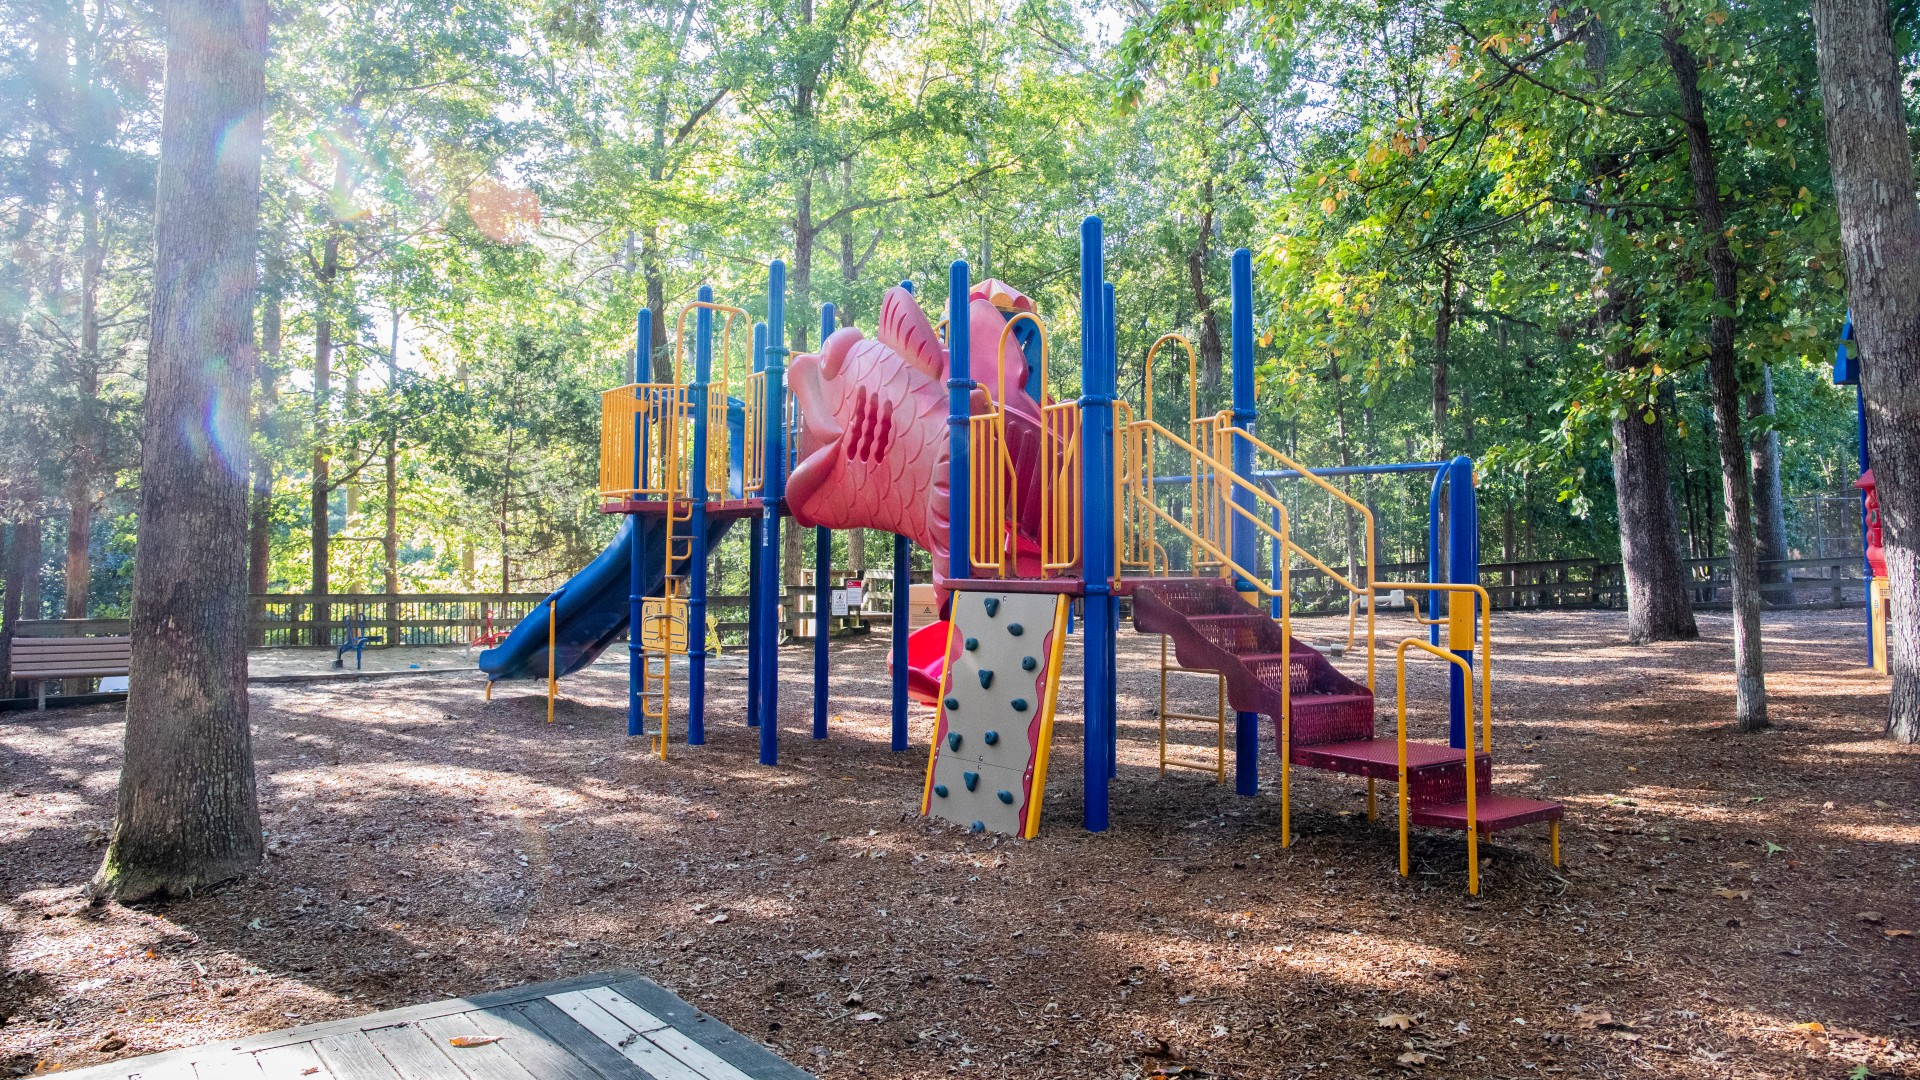 A second playground for kids ages 5 to 12 at Cedar Hills Park